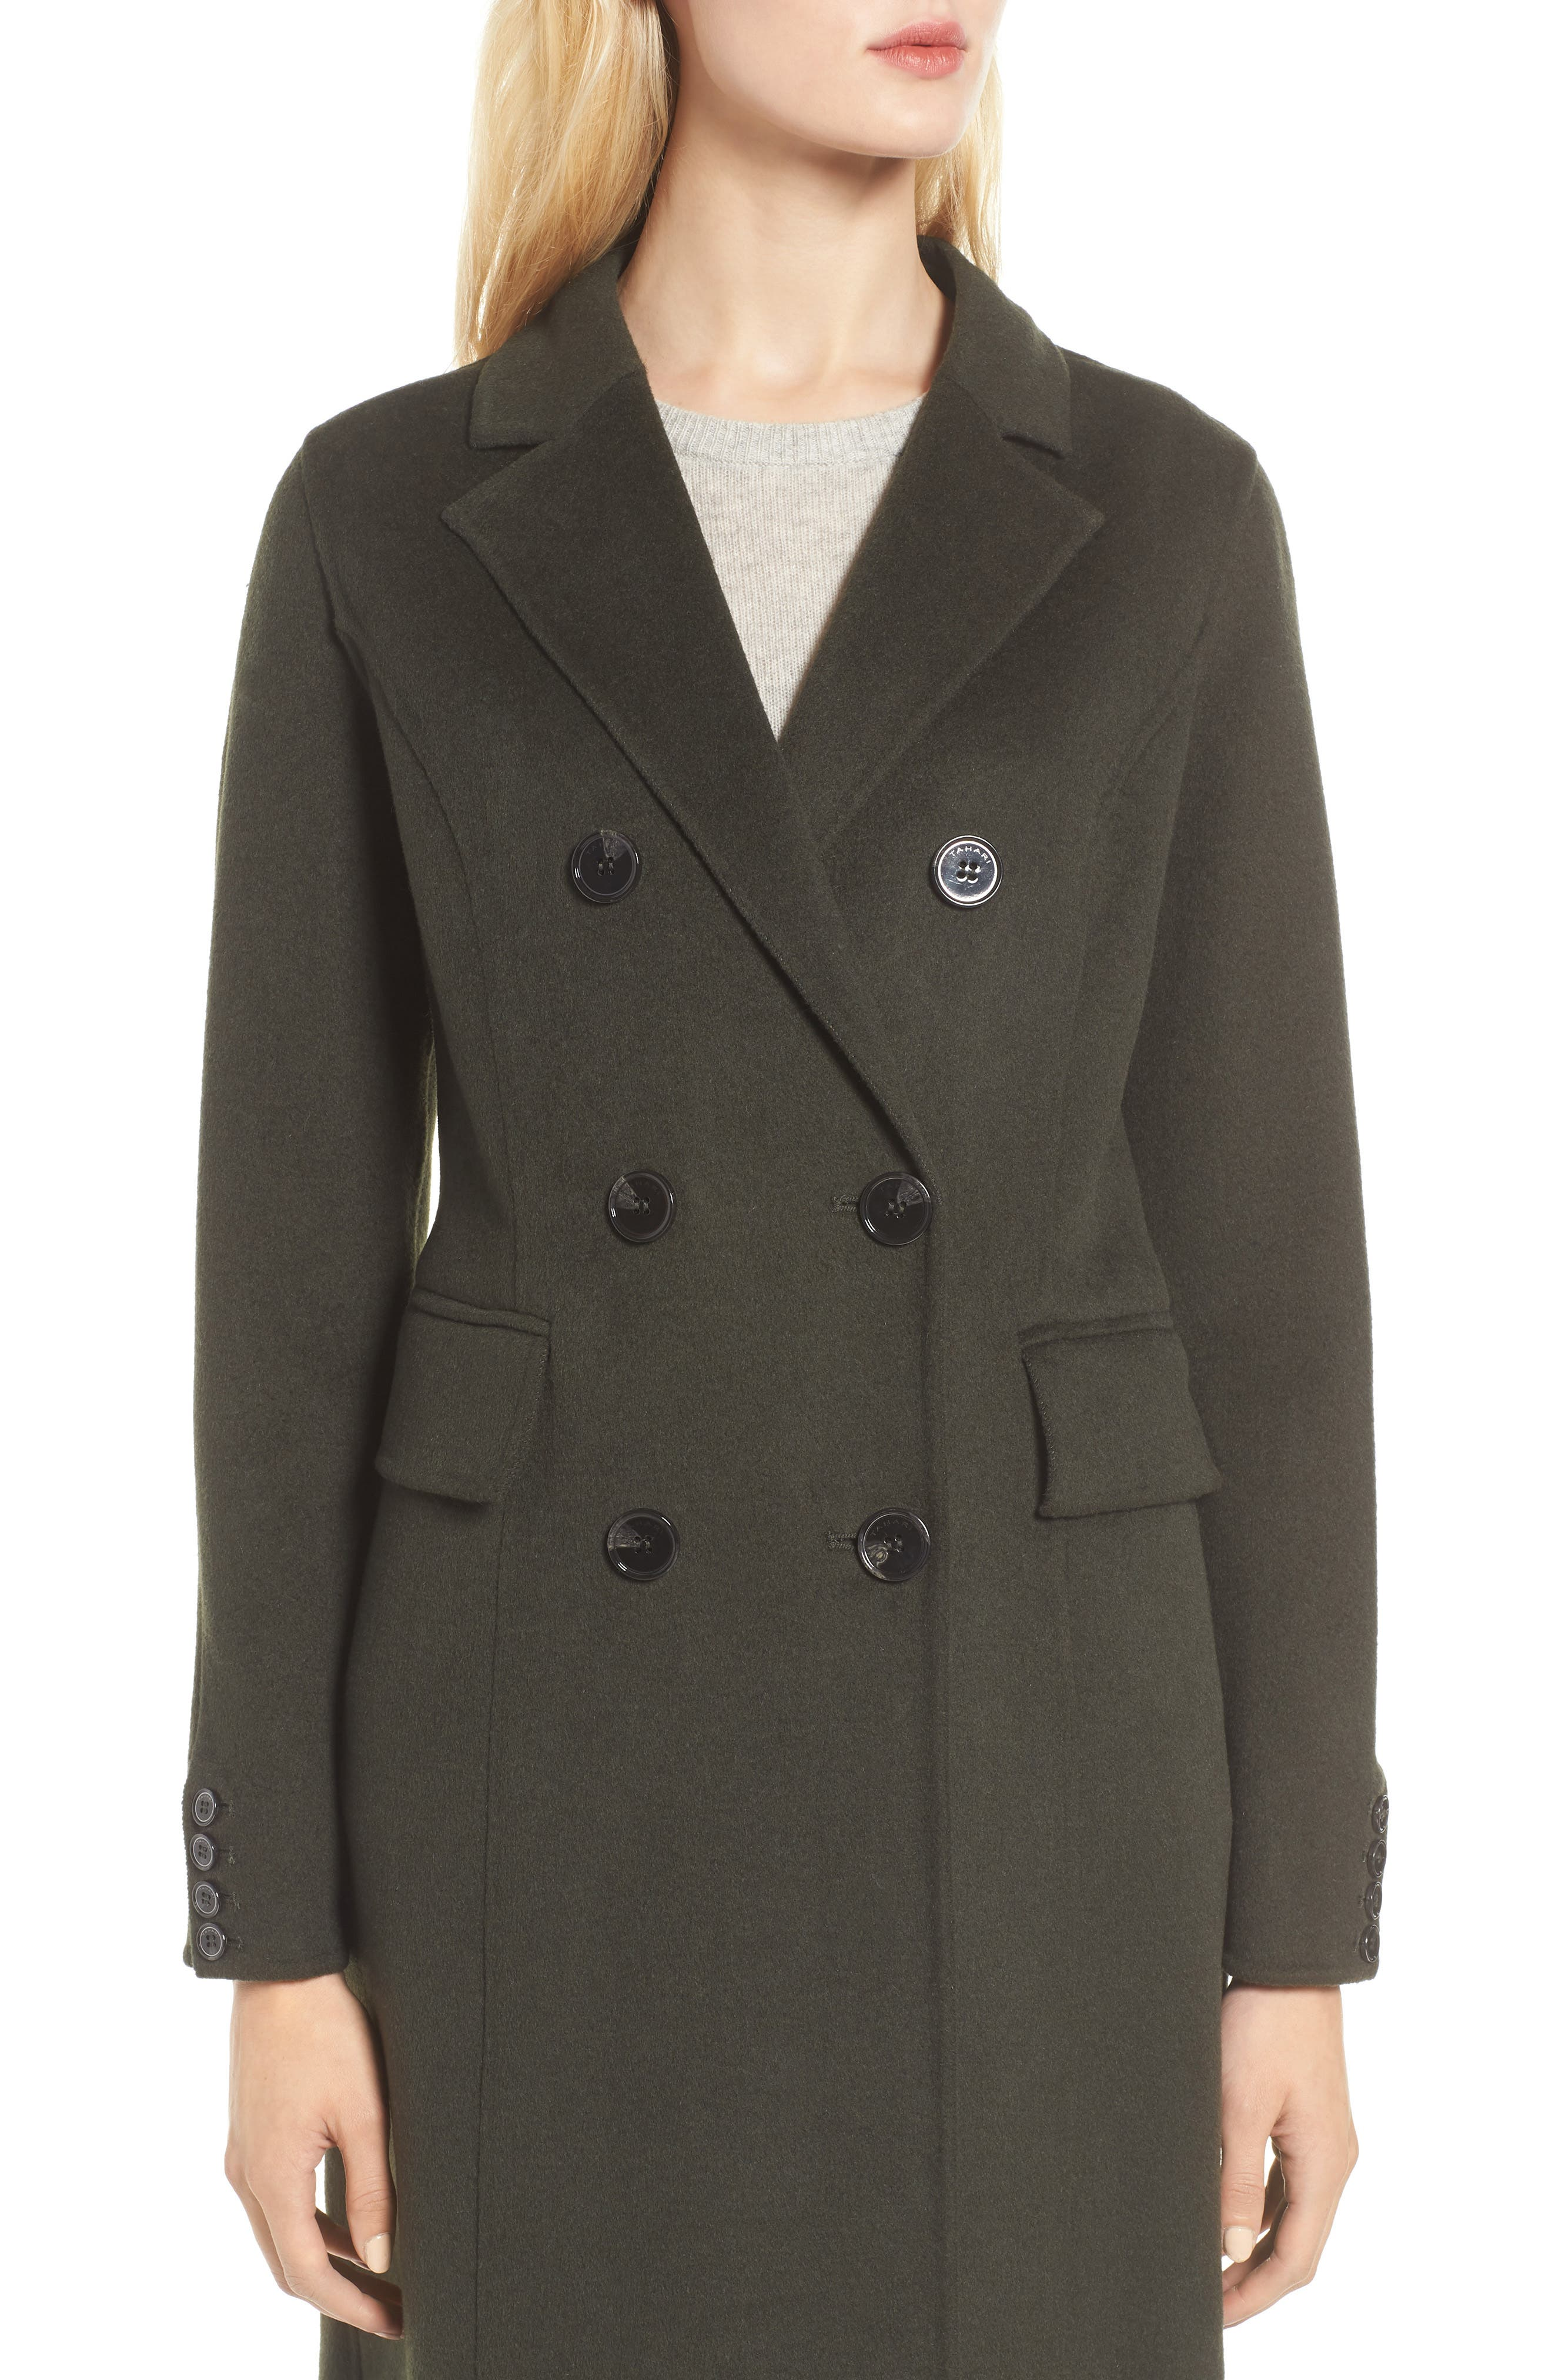 Taylor Double Breasted Wool Coat,                             Alternate thumbnail 4, color,                             300